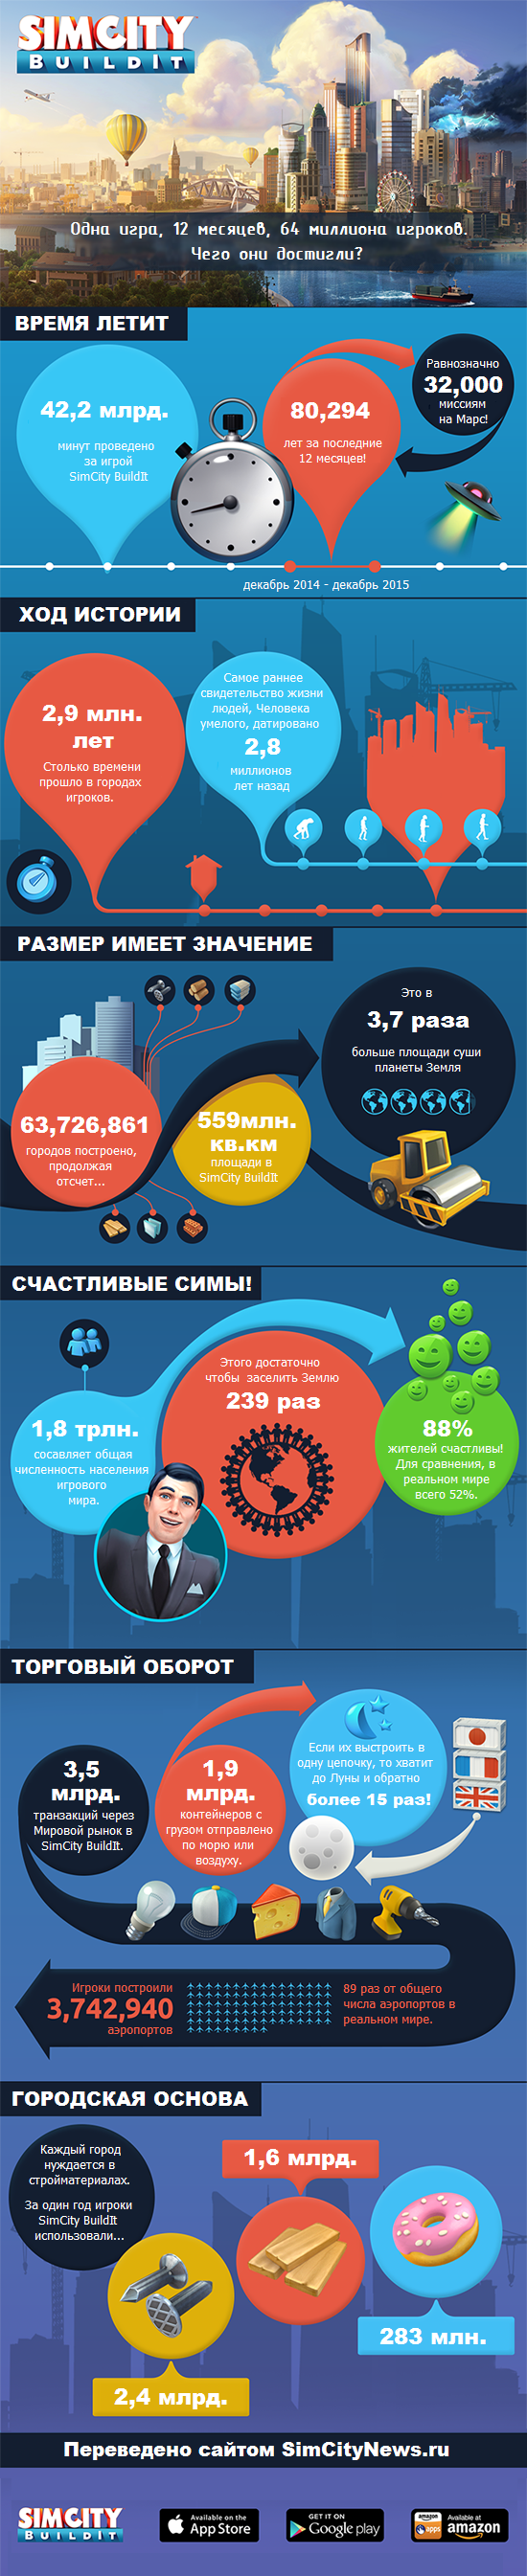 SimCity BuildIt infographic